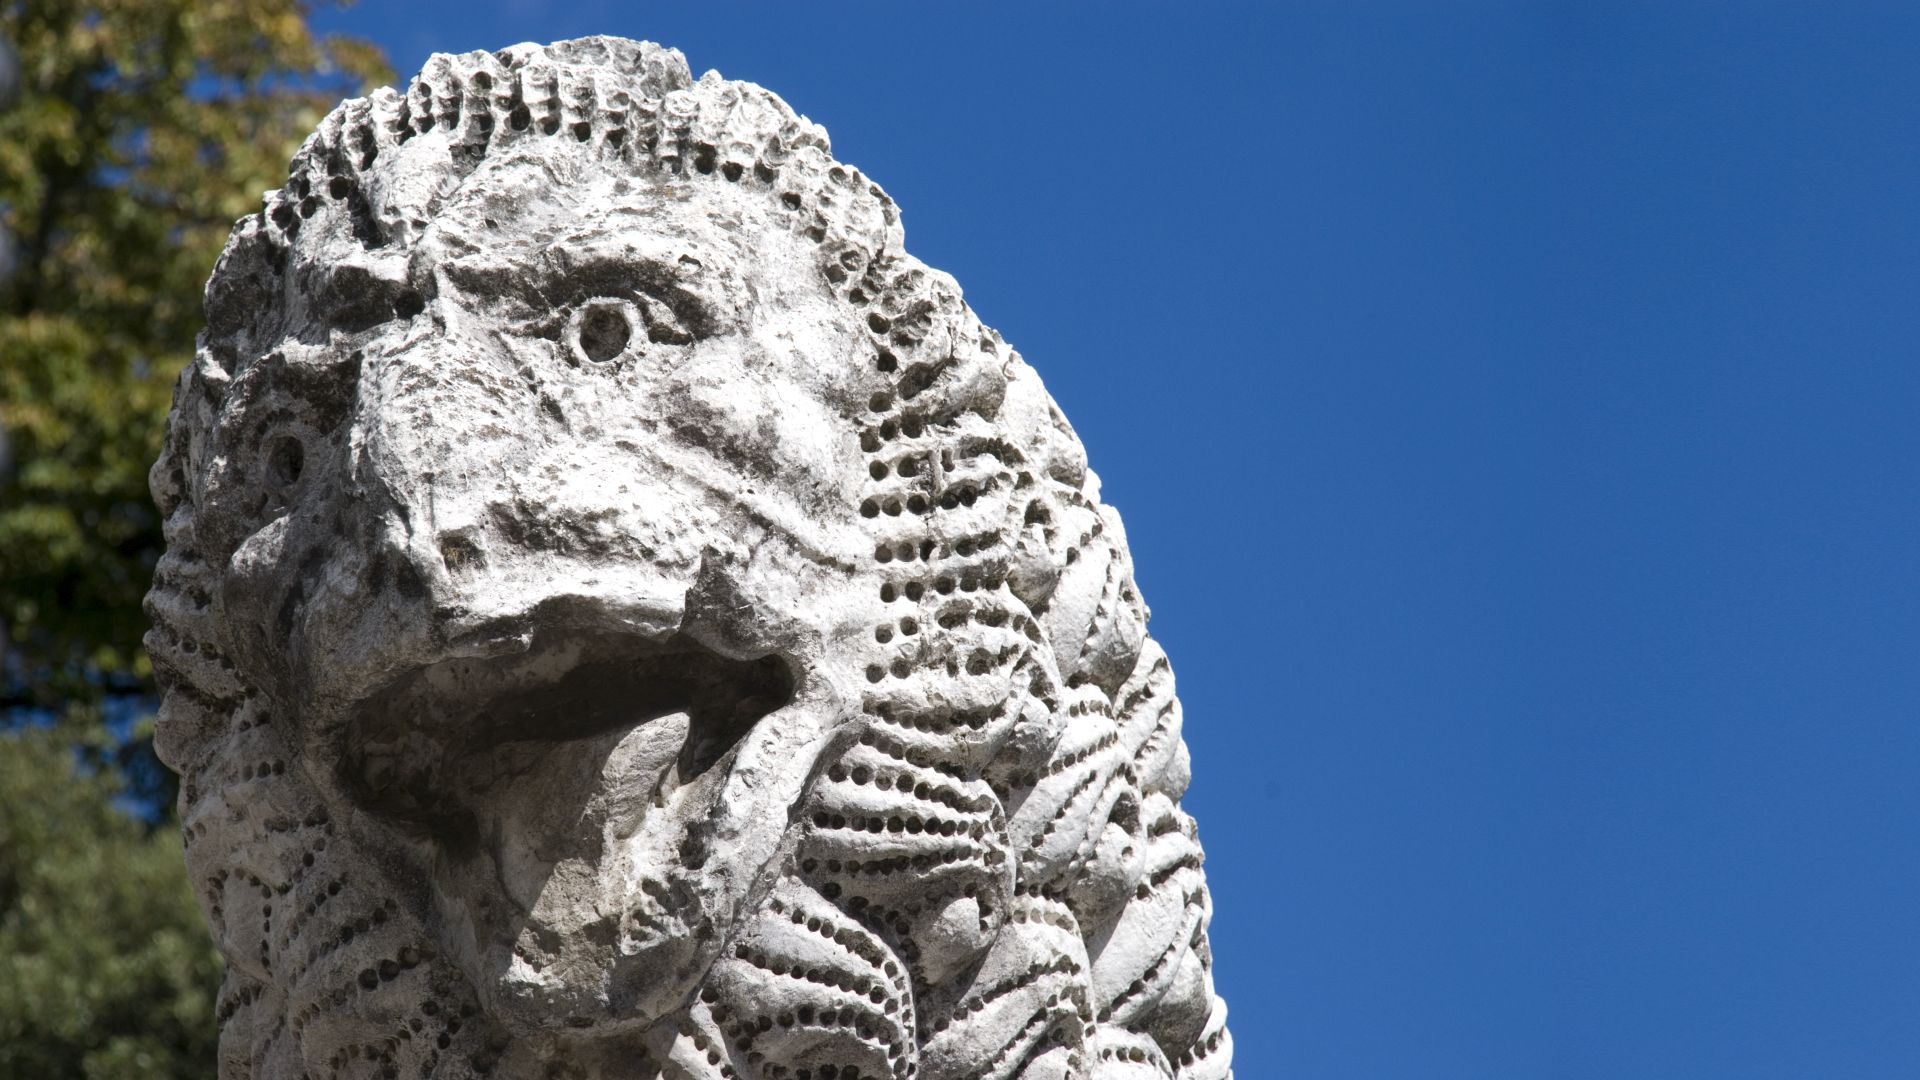 lion of the Roman period on the Wall of Lucca